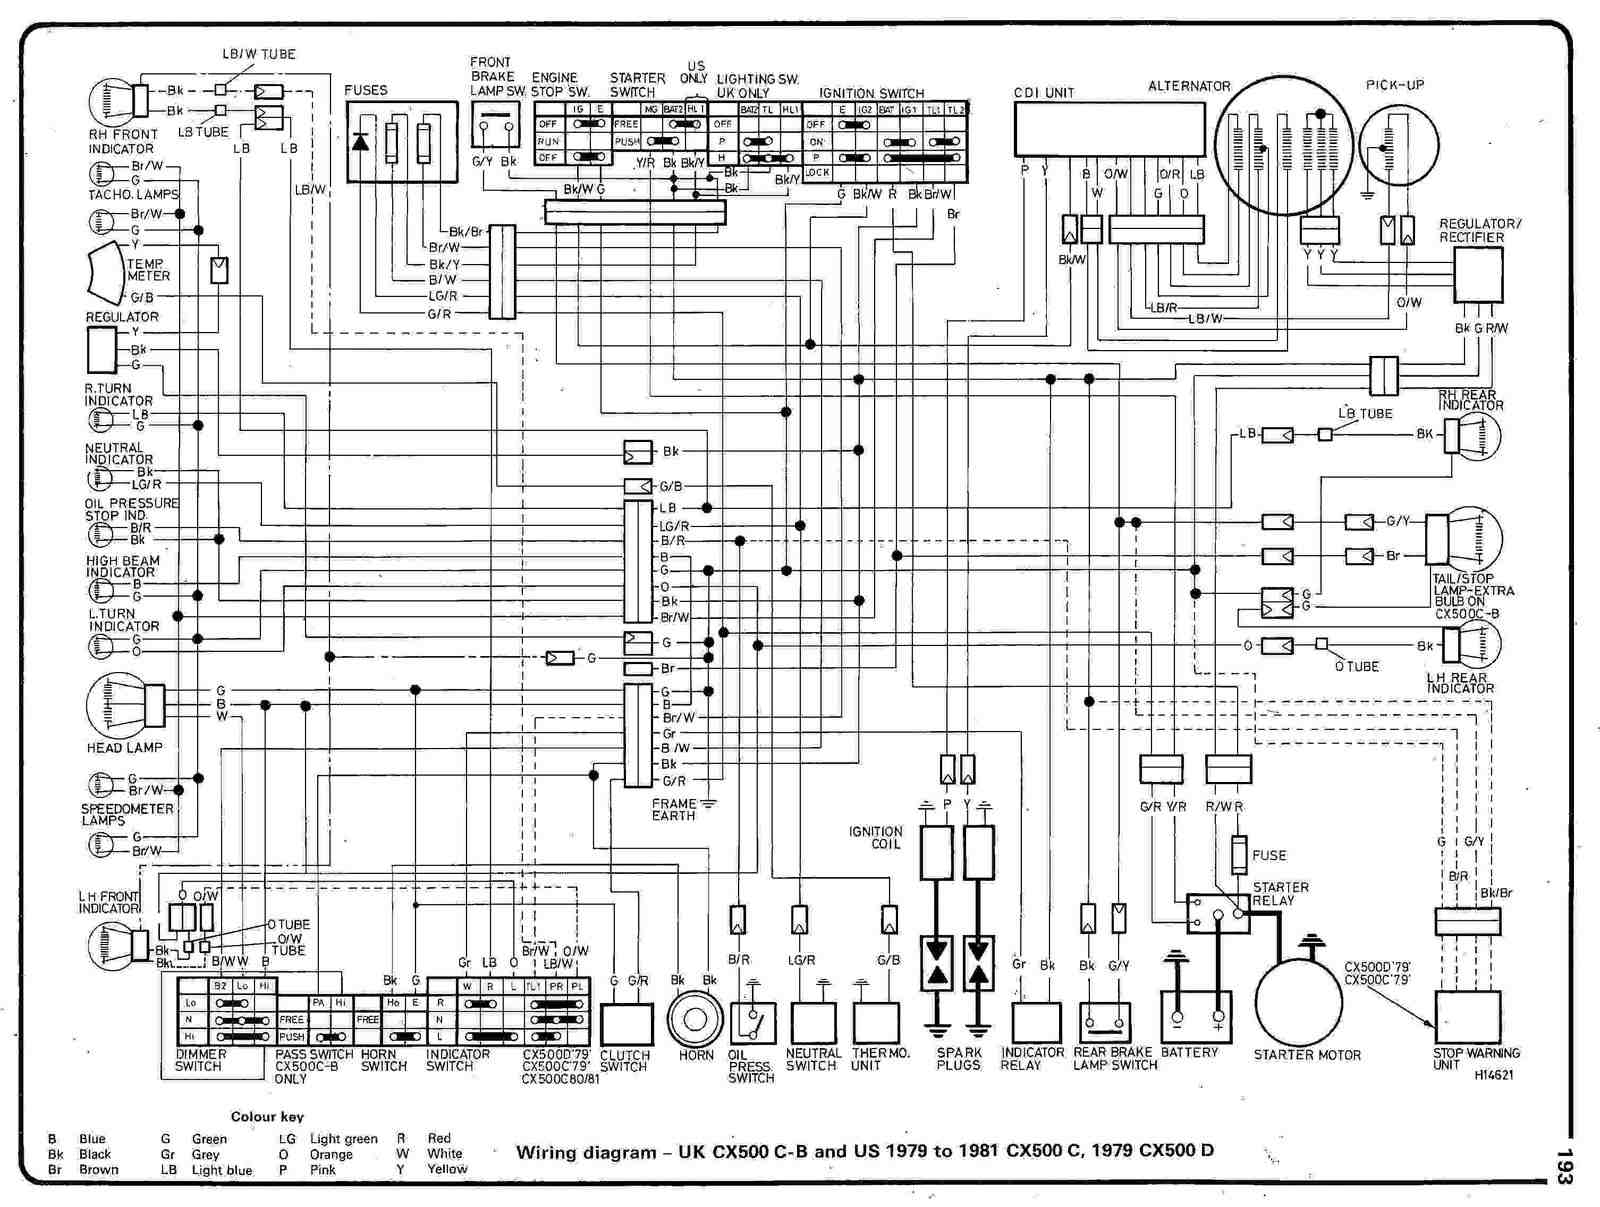 hight resolution of 1979 mustang wiring diagram wiring diagrams img 1999 mustang wiring diagram 1979 mustang wiring diagram